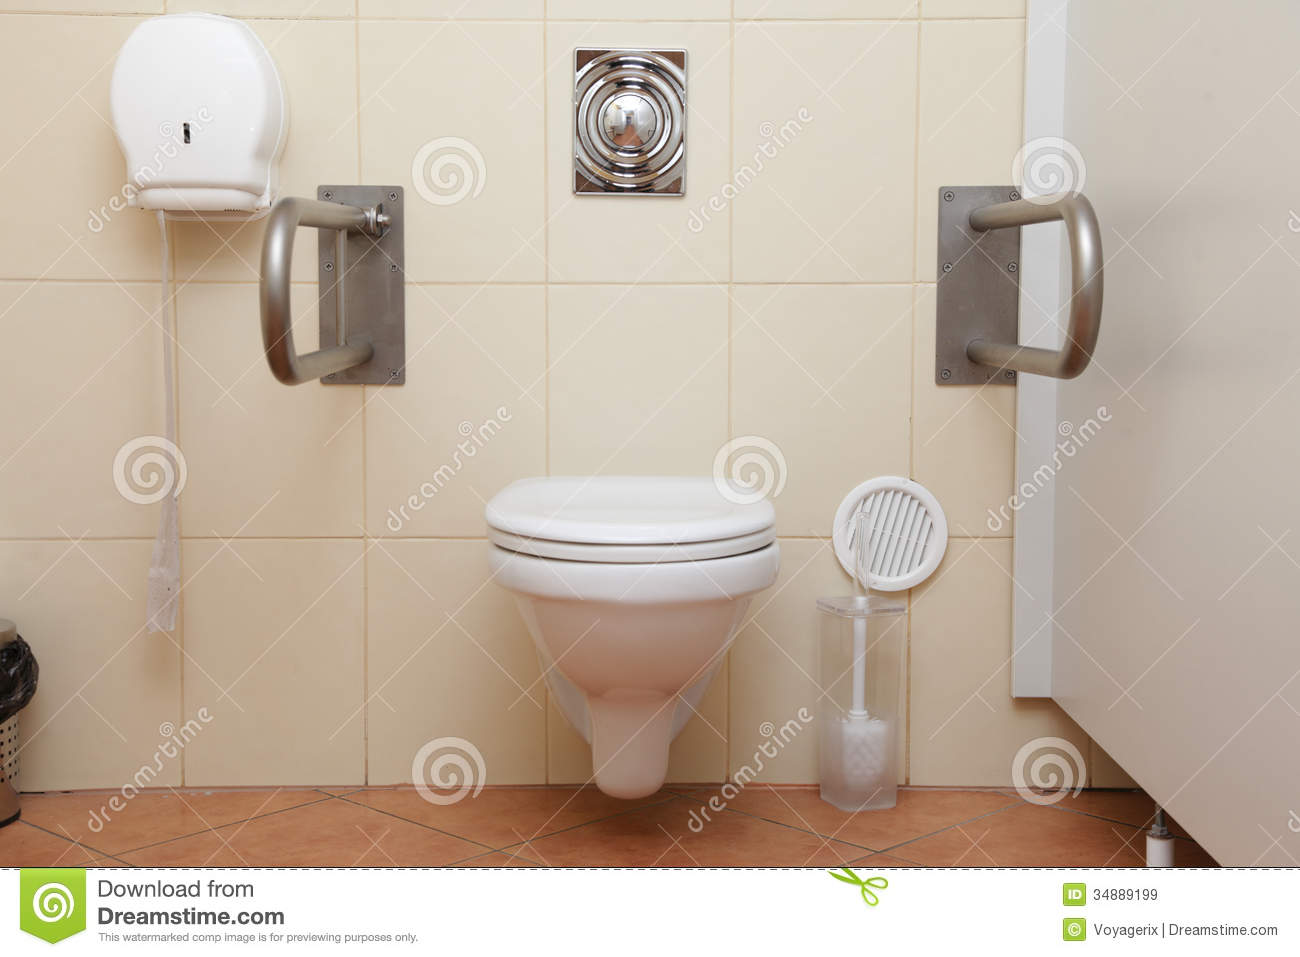 Toilet for disabled people royalty free stock images - Toilet for handicapped person ...